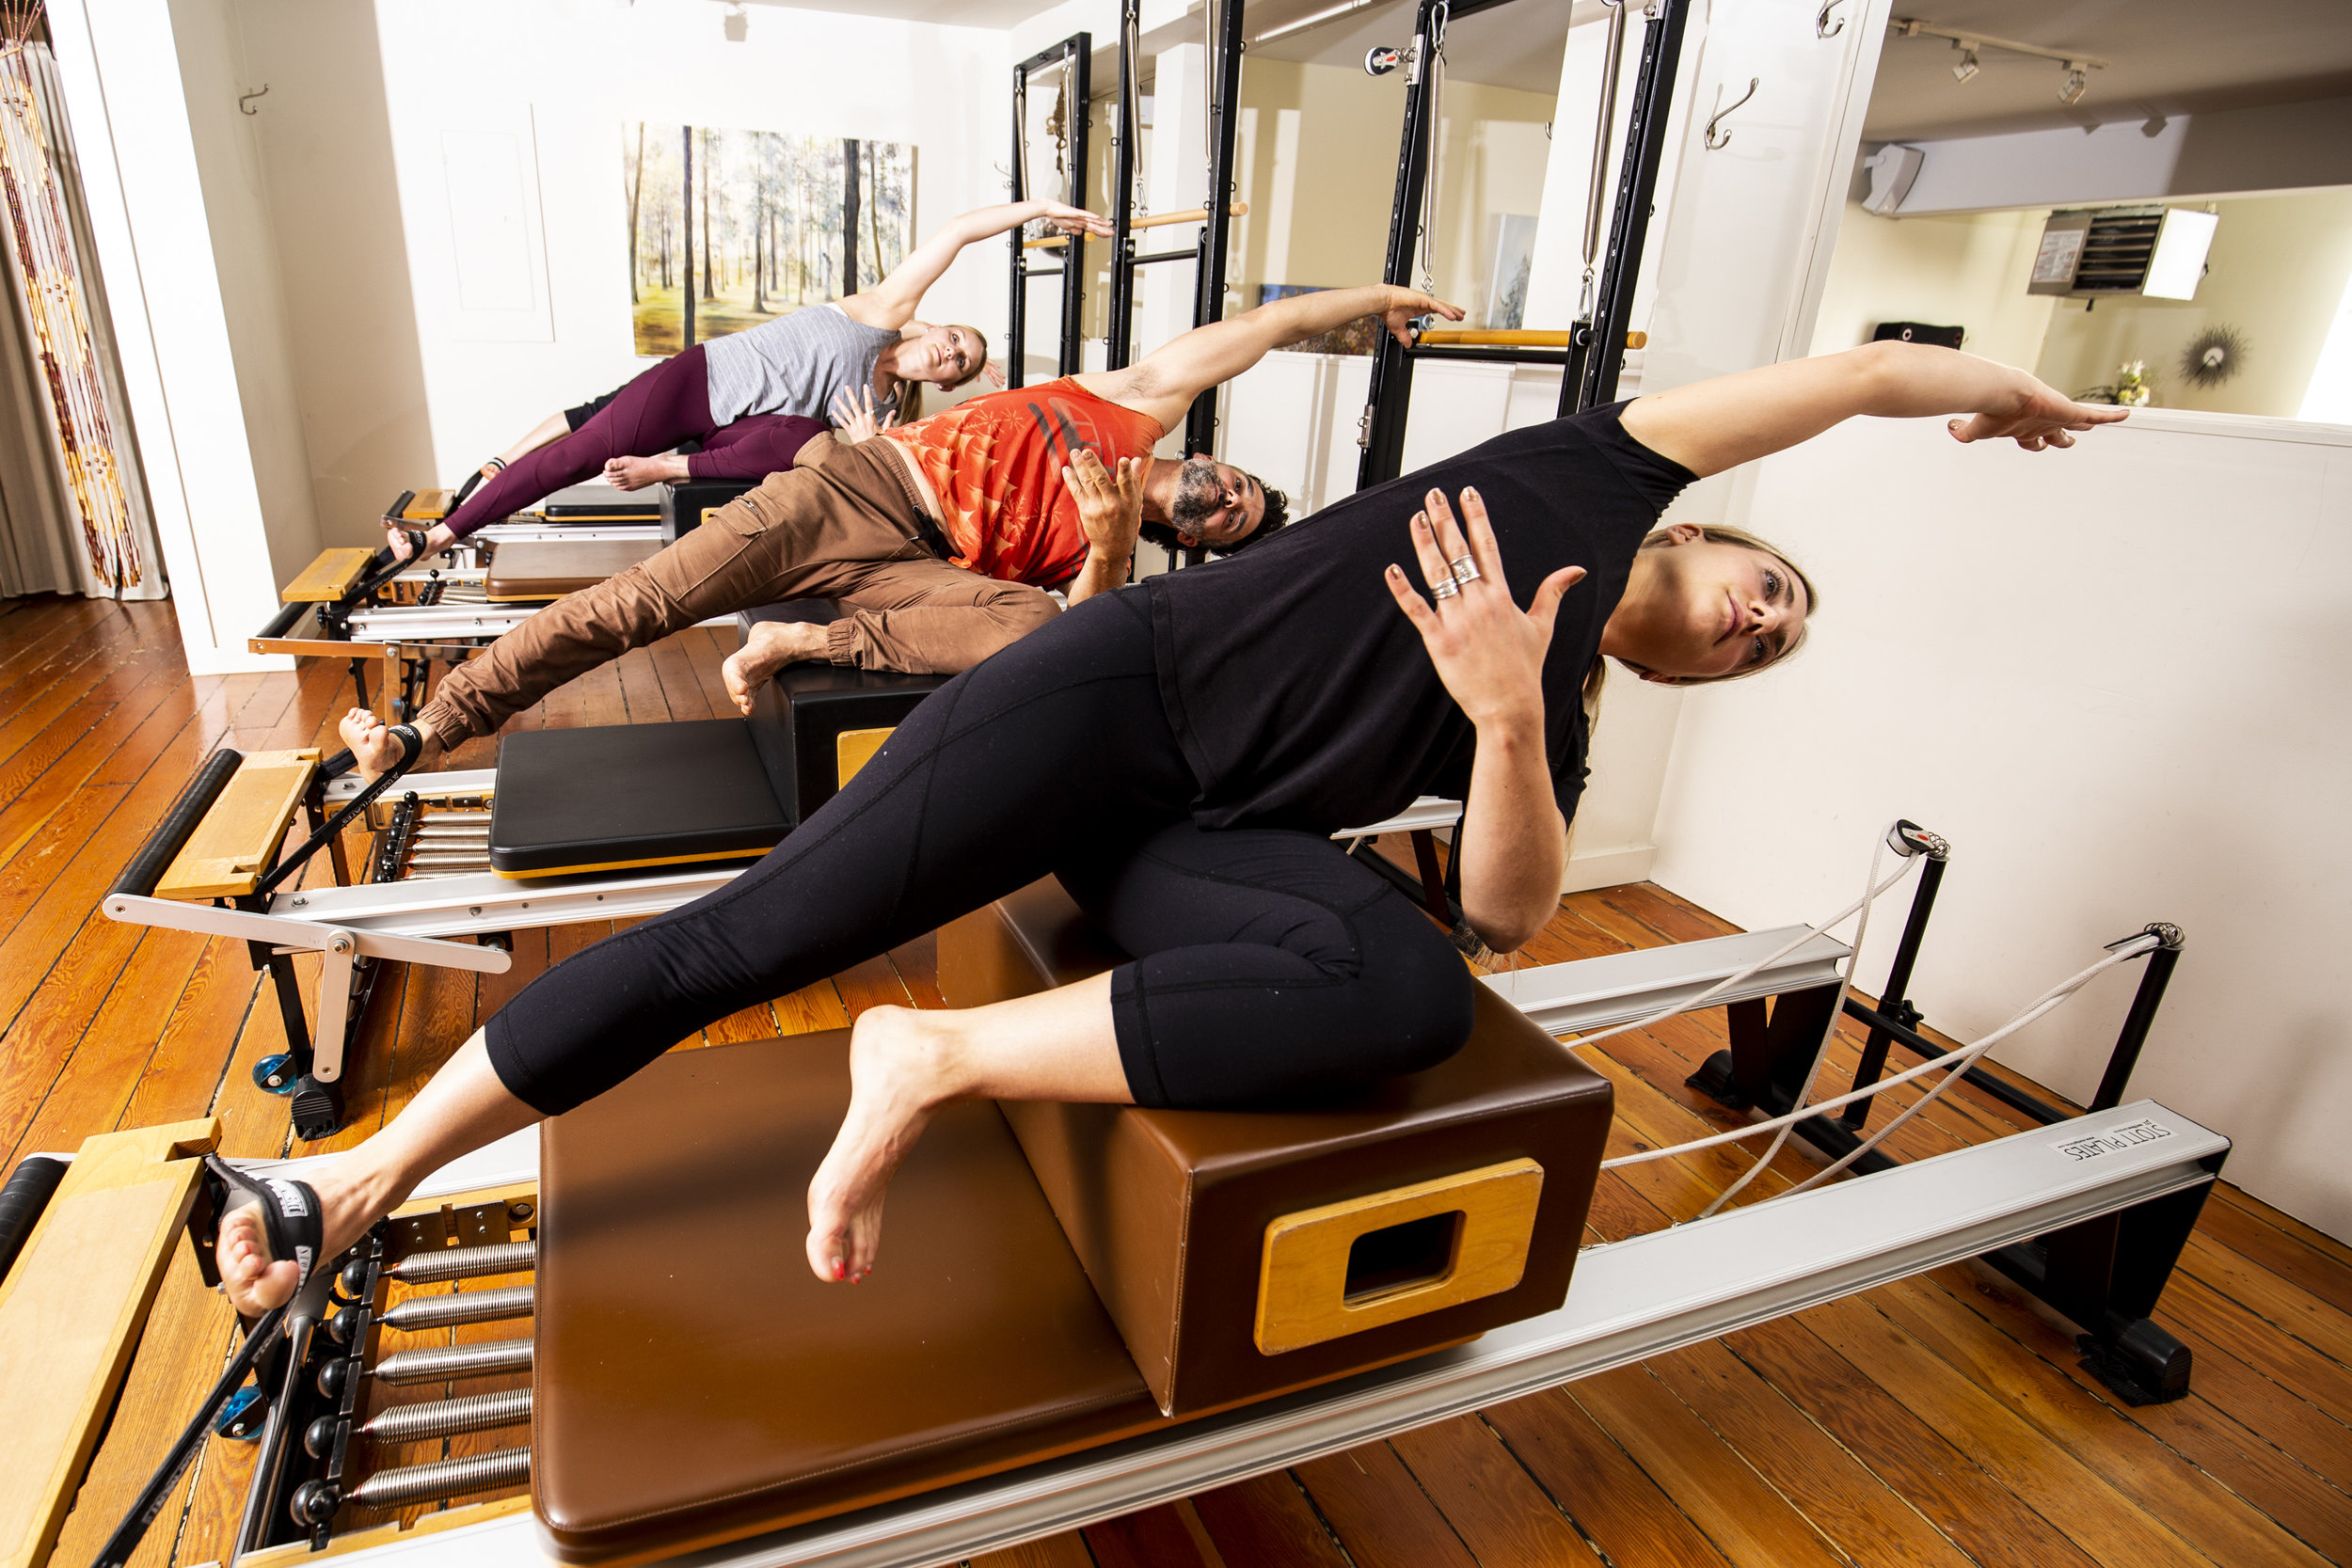 FullCircleStudio-VancouverPilates-Reformer Shot-May 2019.jpg